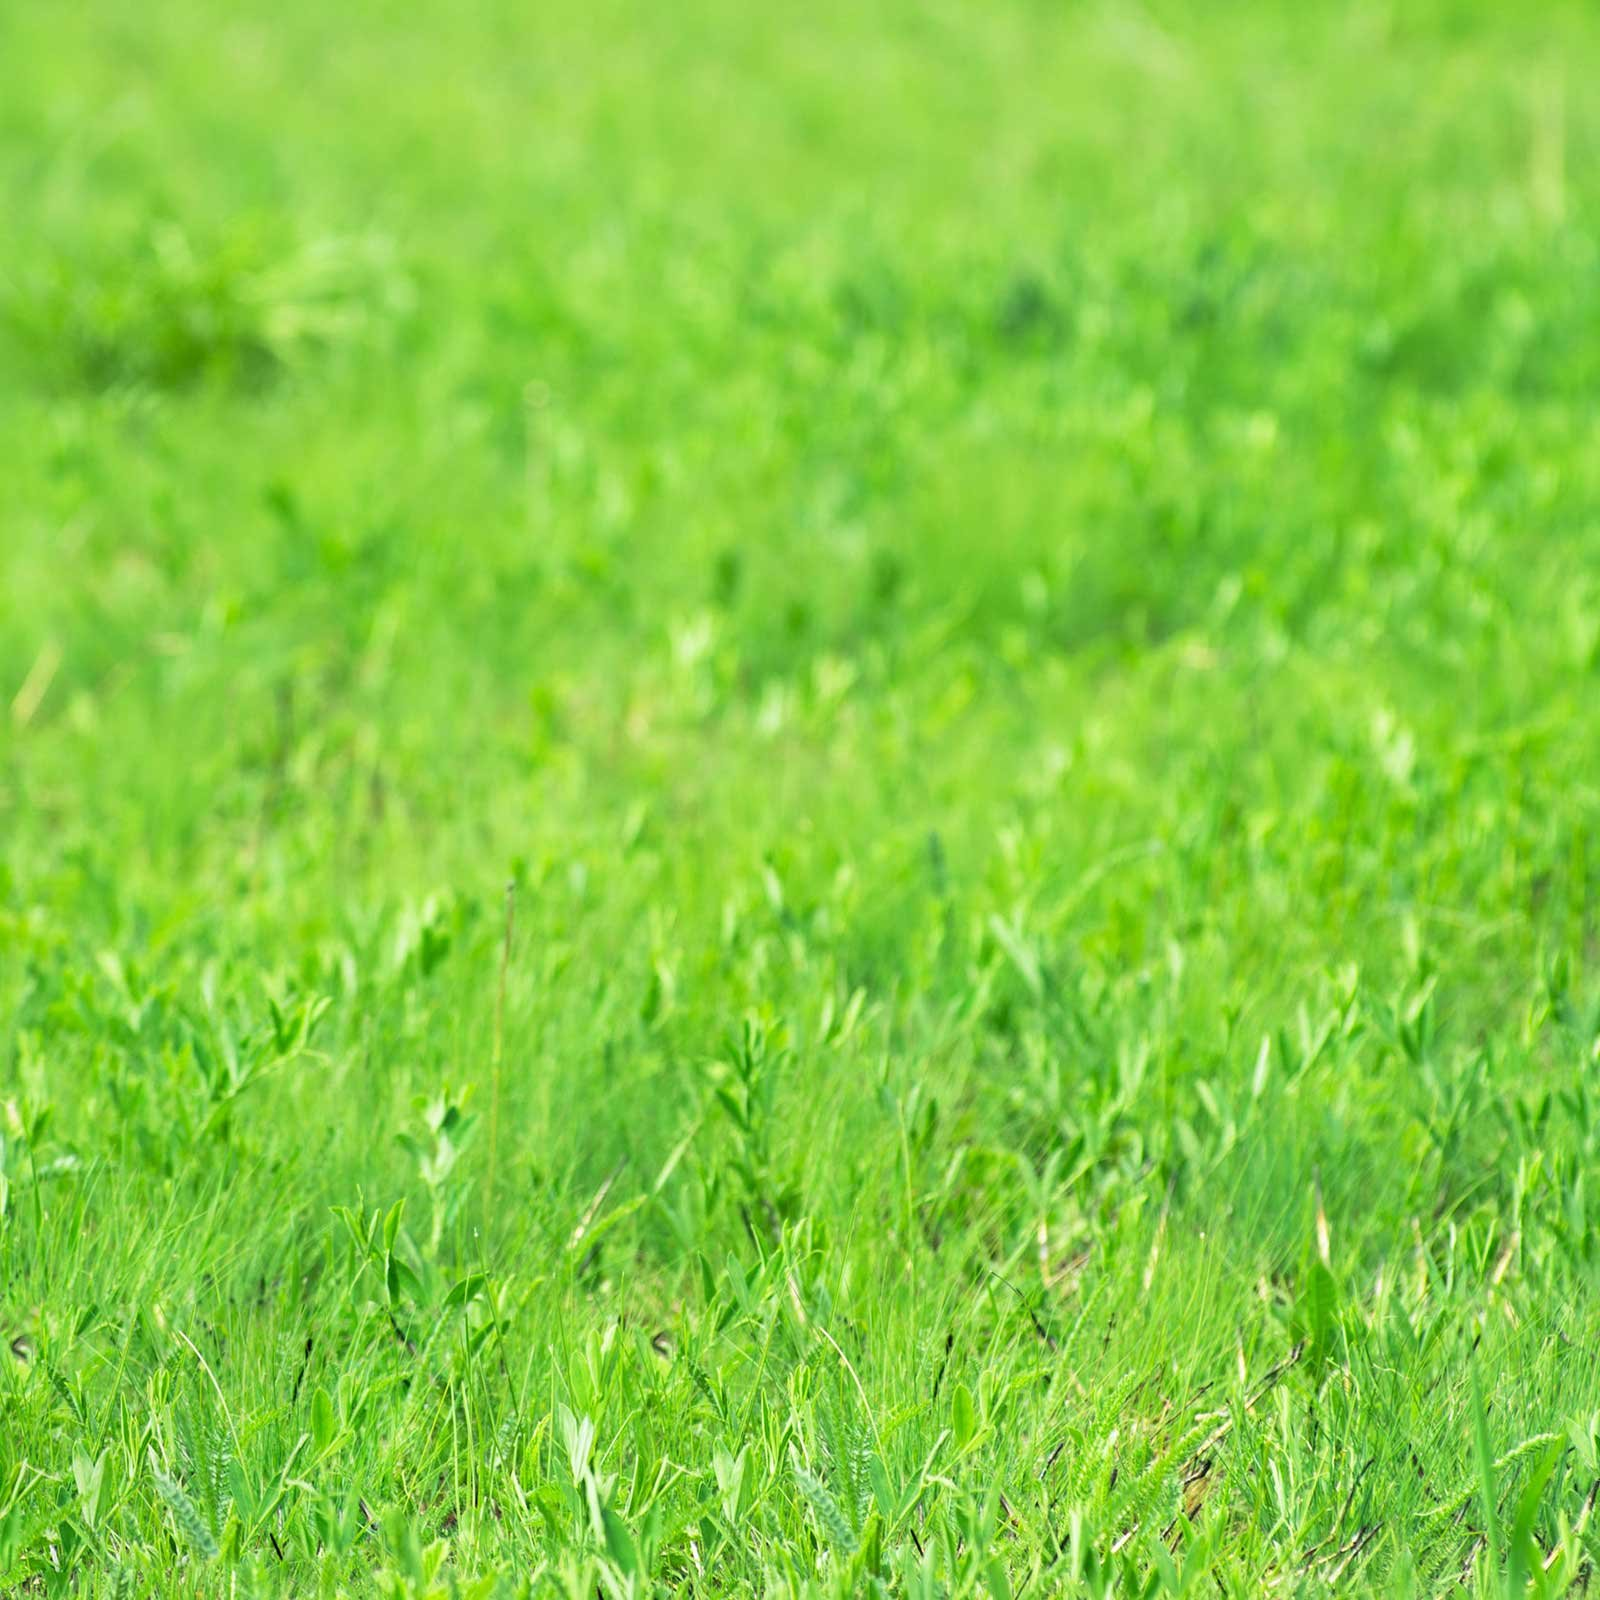 Grass Seeds - Irrigated Pasture Mix - 25 Lbs Bulk - Tall Fescue, Perennial Ryegrass, Meadow Brome, Orchardgrass by Mountain Valley Seed Company (Image #1)